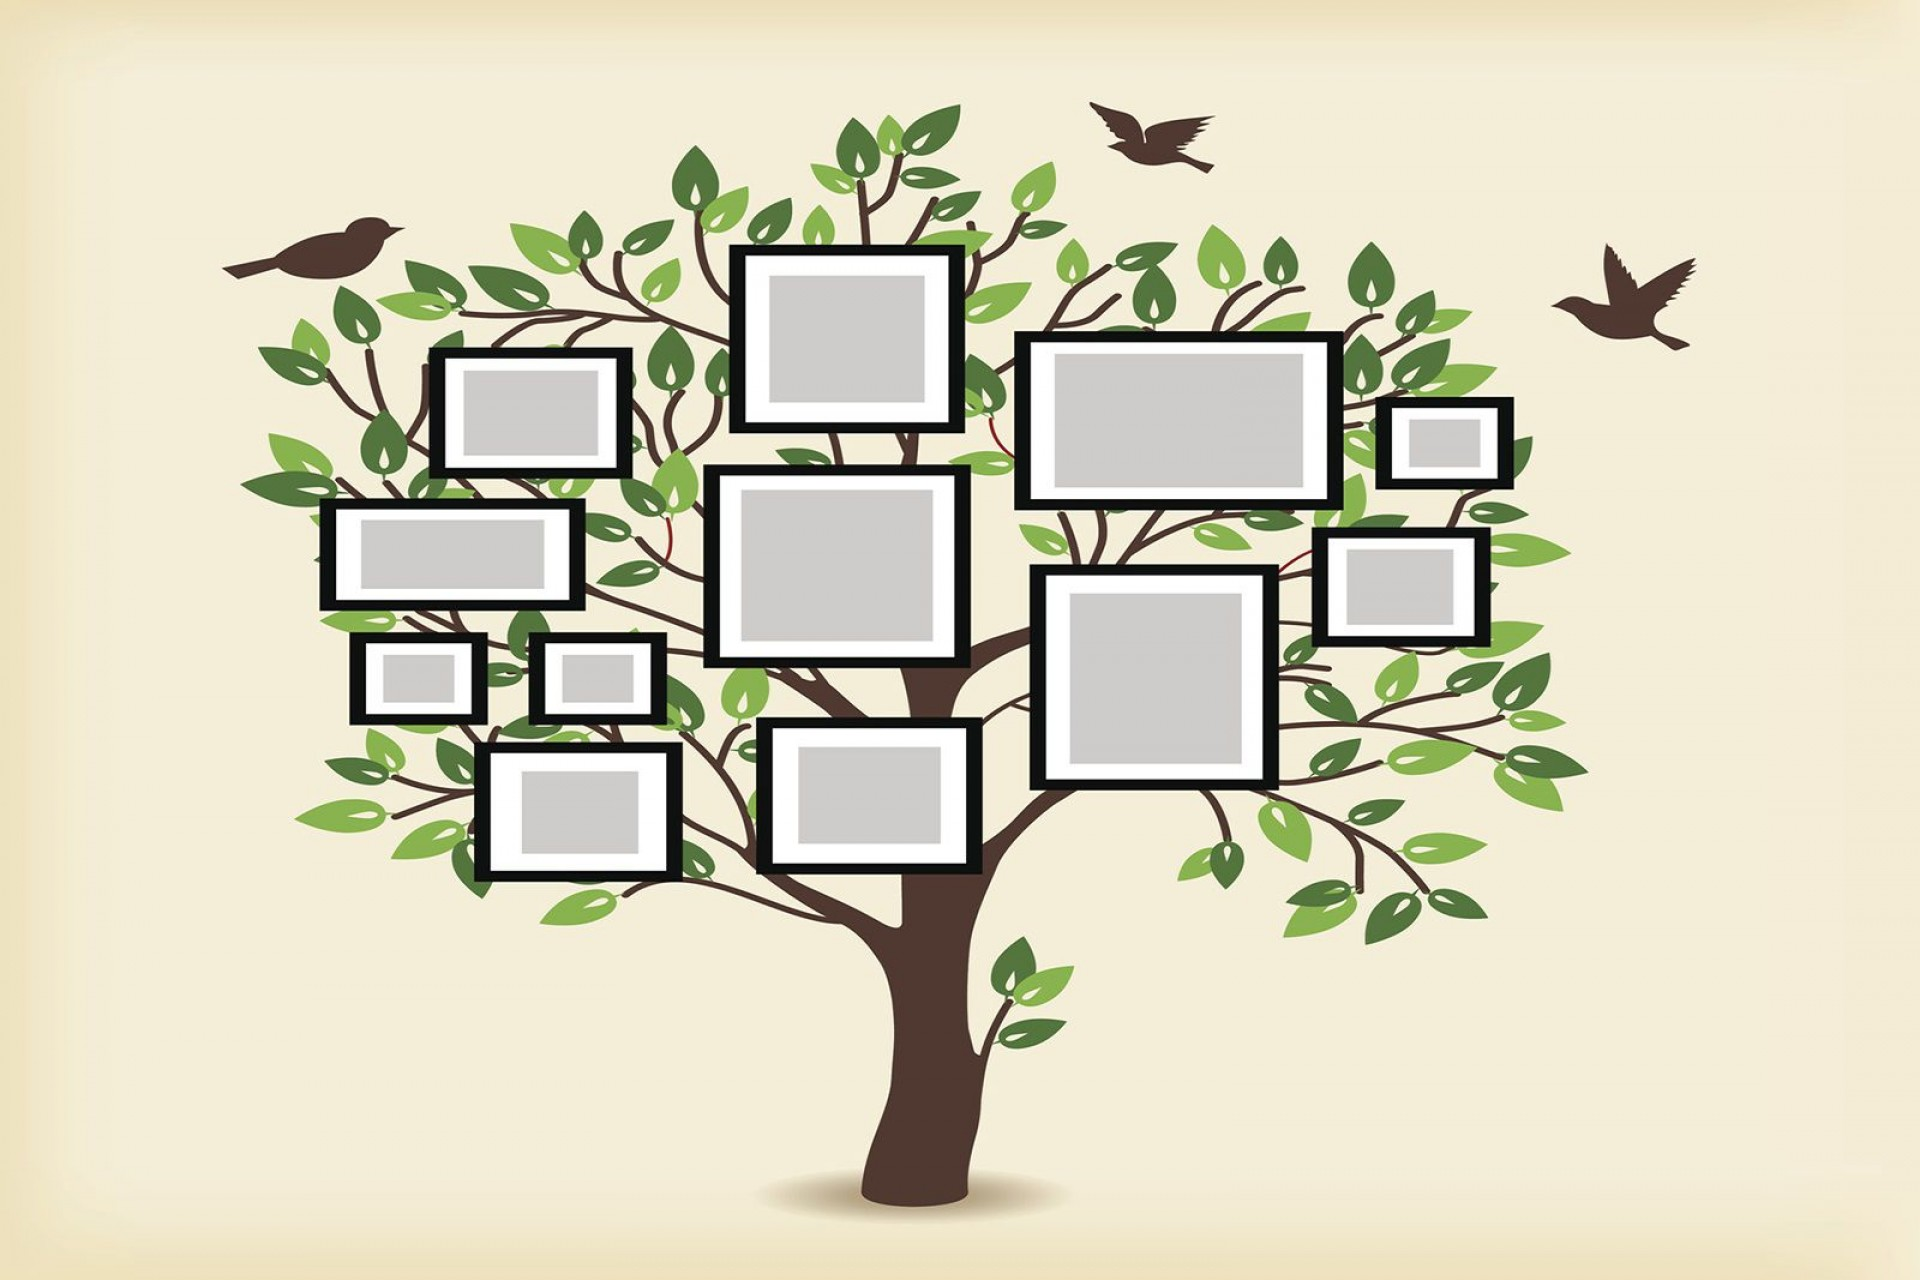 006 Remarkable Family Tree For Baby Book Template Sample  Printable1920